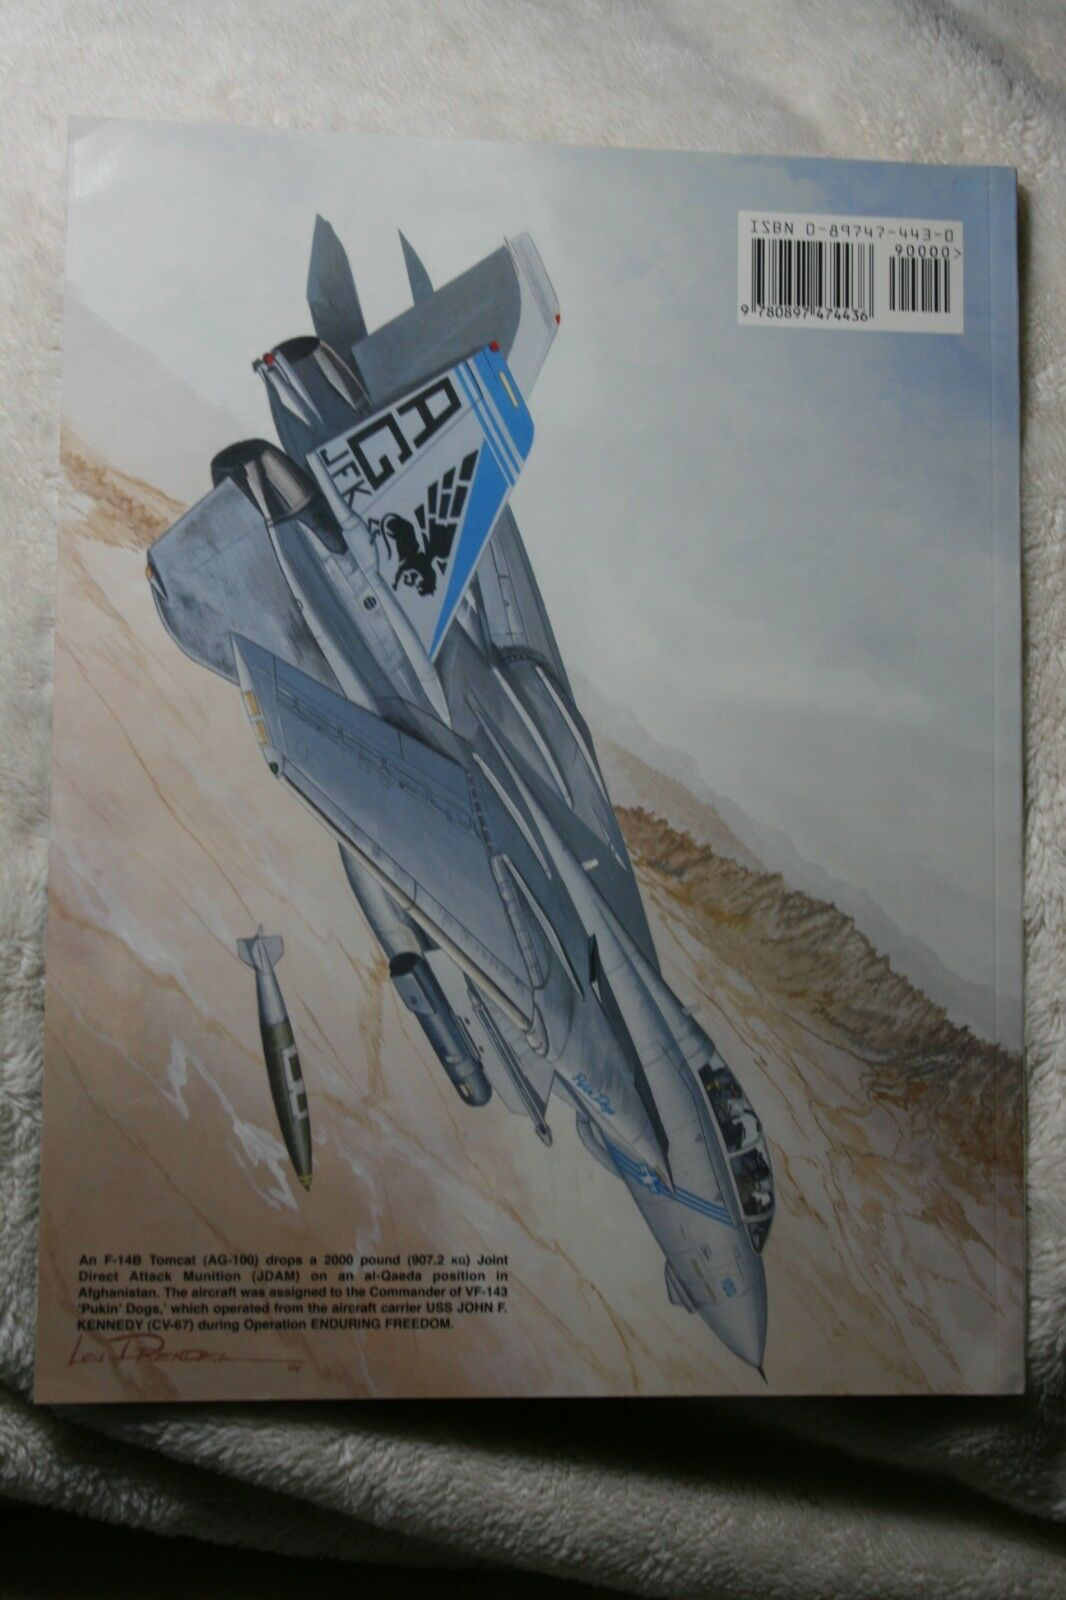 Operation Enduring Freedom Squadron Signal Book # 6123 Very Good Condition |